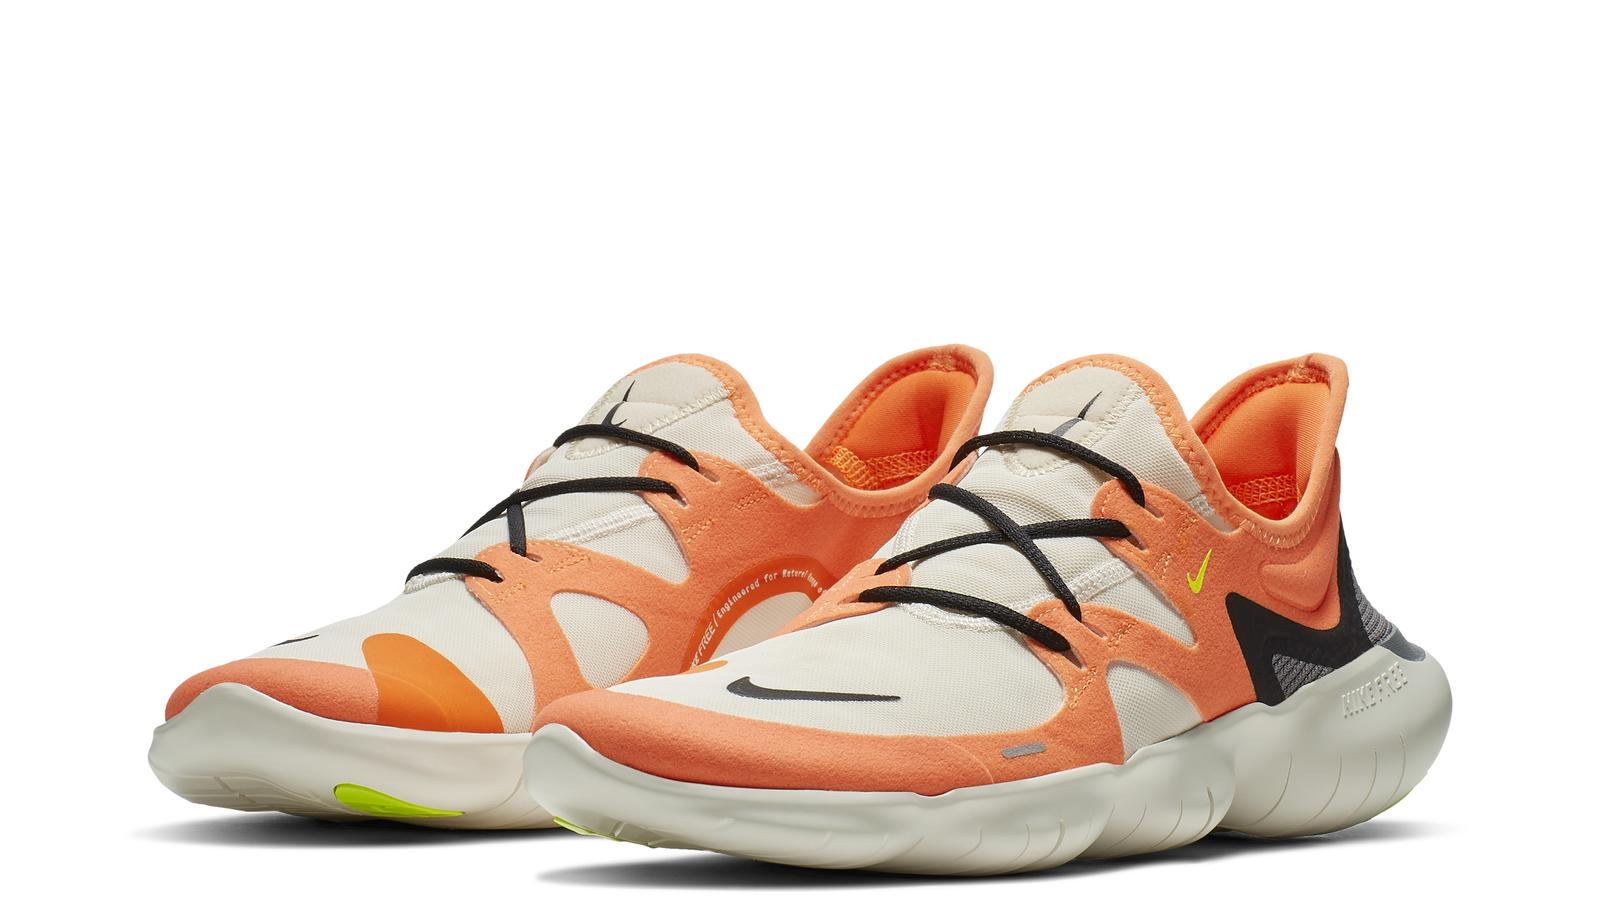 get nike free run 5.0 damänner orange lila c1c49 9ba49